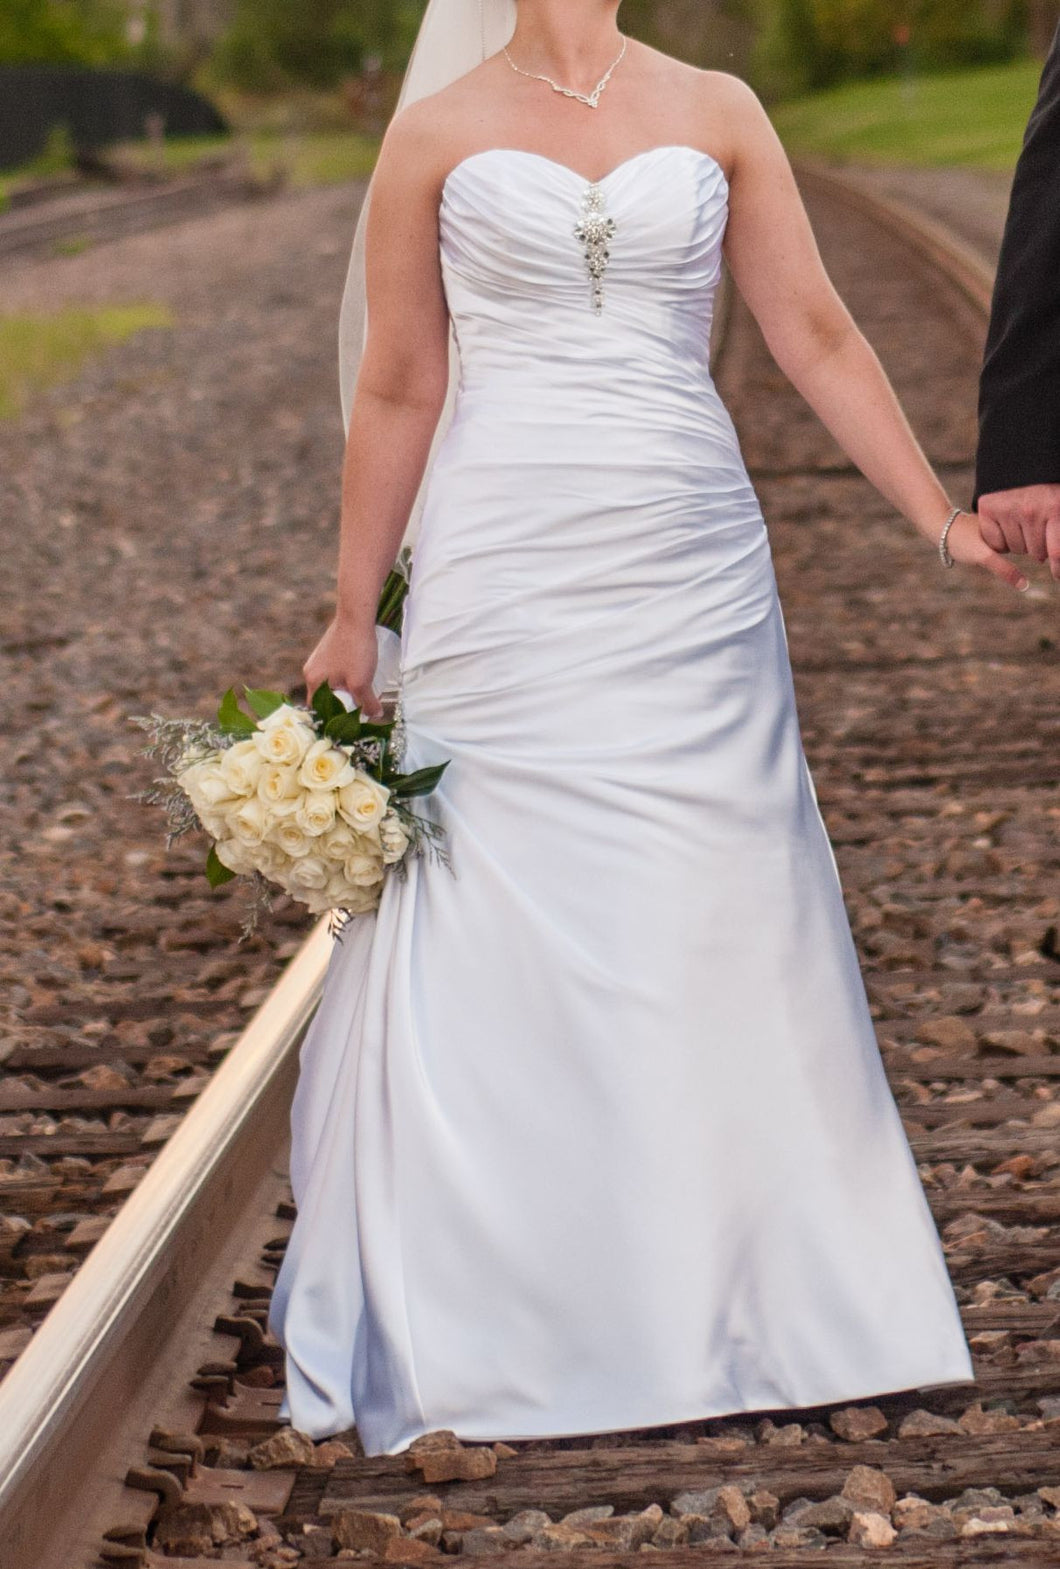 Maggie Sottero 'Deidre' - Maggie Sottero - Nearly Newlywed Bridal Boutique - 1